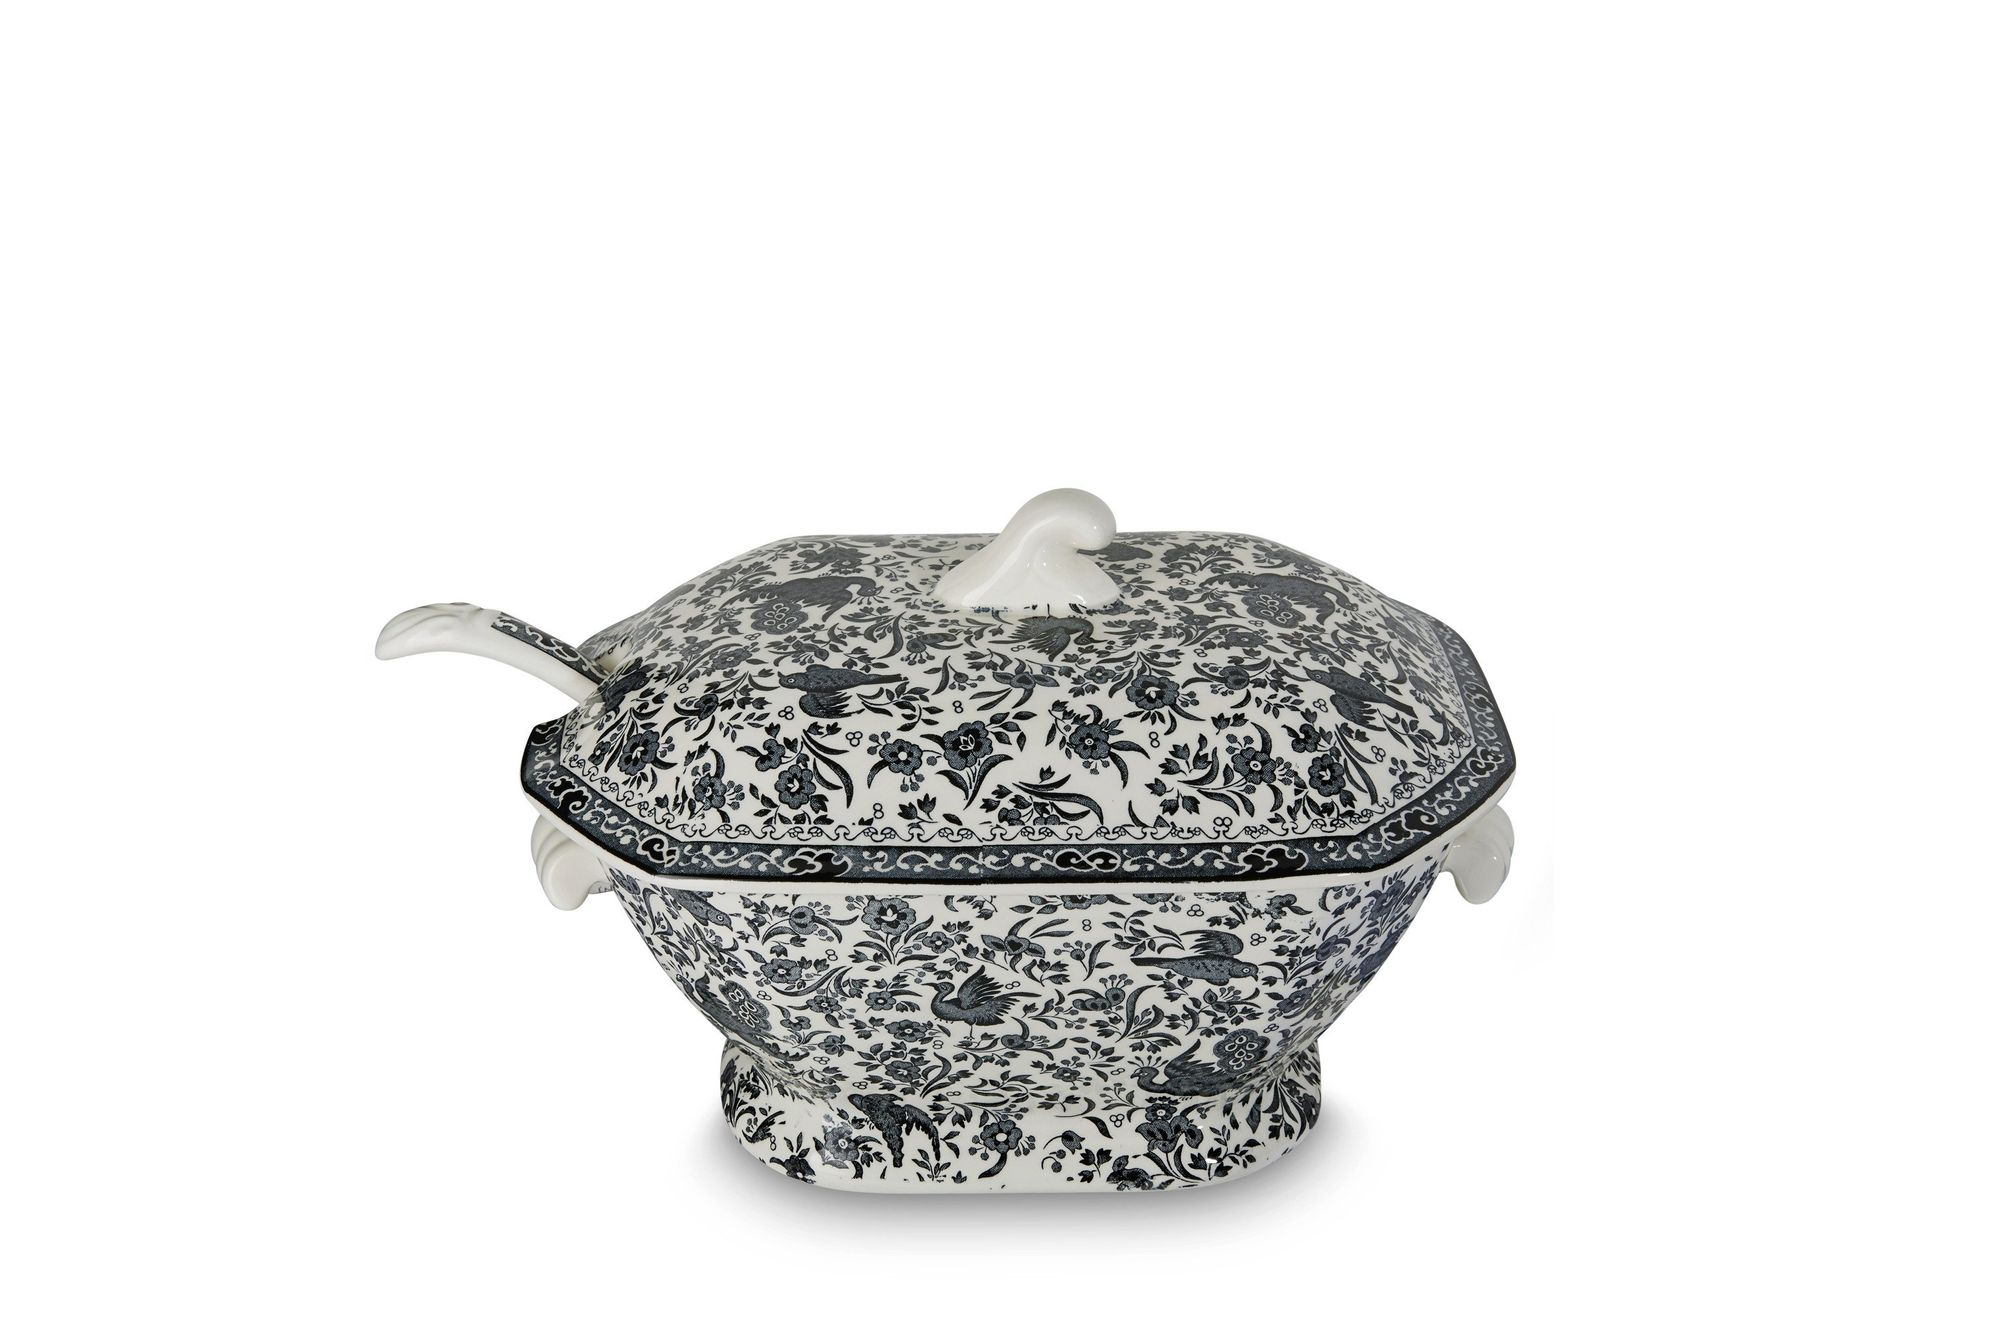 Burleigh Black Regal Peacock Soup Tureen + Lid thumb 2